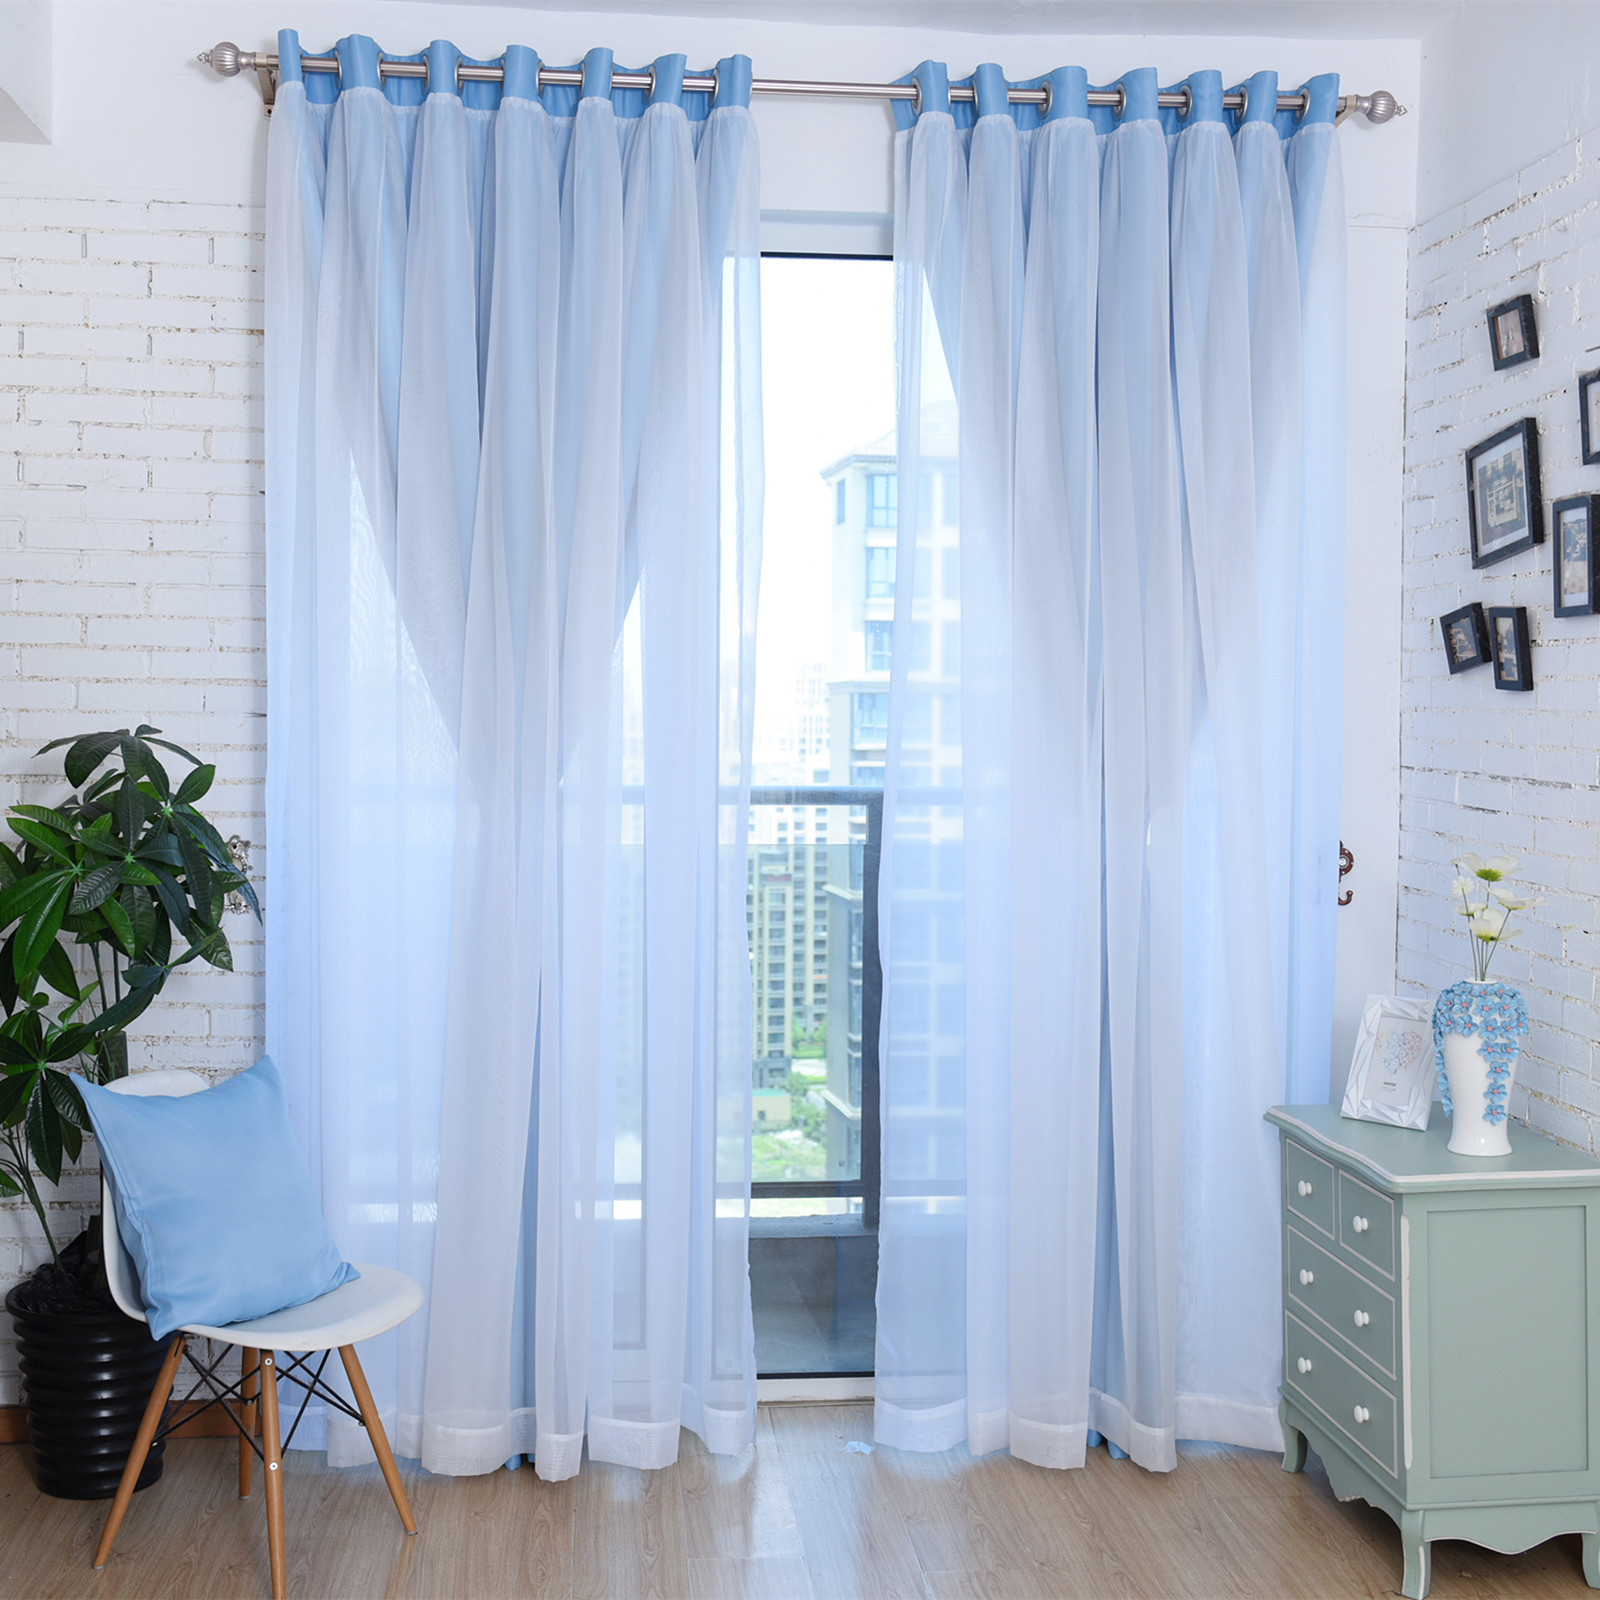 Cheap Custom Curtains Promotion Shop For Promotional Cheap Custom Curtains On